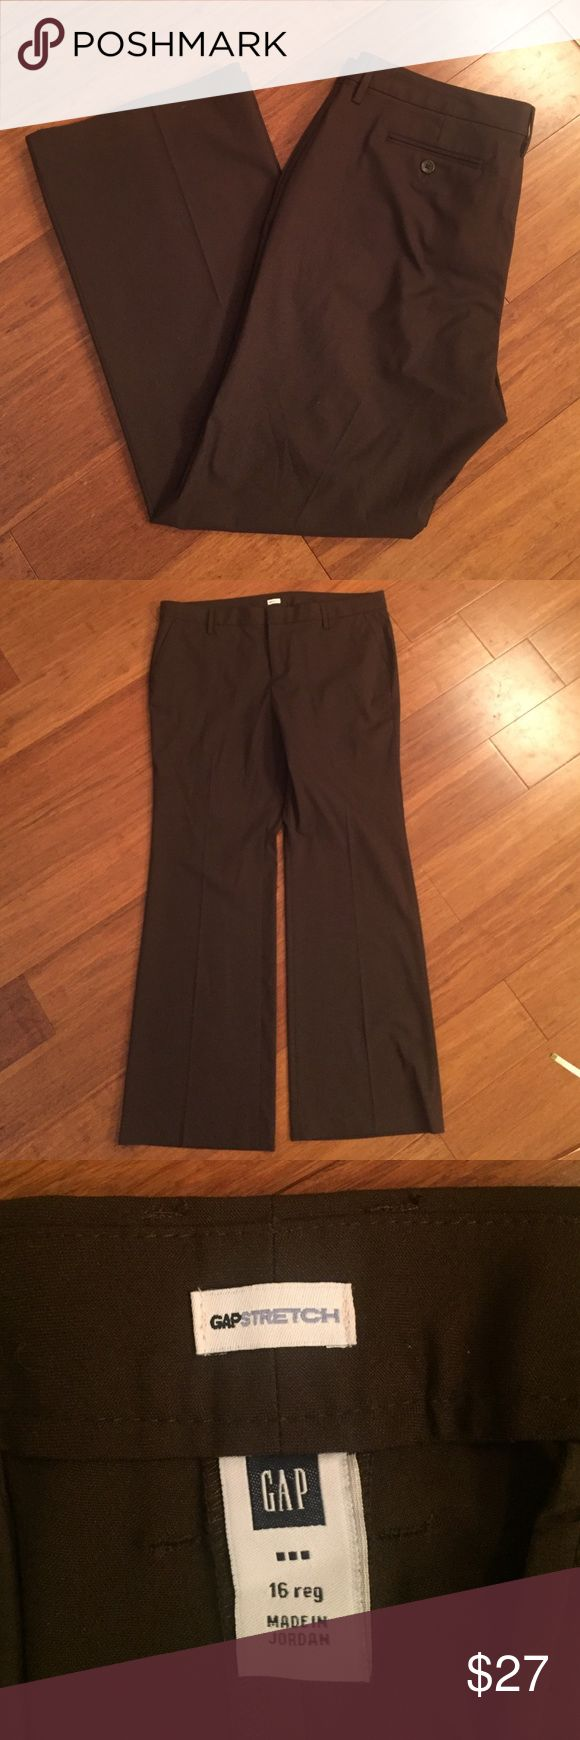 "Gap Outlet chocolate brown trousers Excellent condition. Has belt loops. 64% polyester, 33% rayon, 3% spandex. Inseam 31.5"" GAP Pants Trousers"